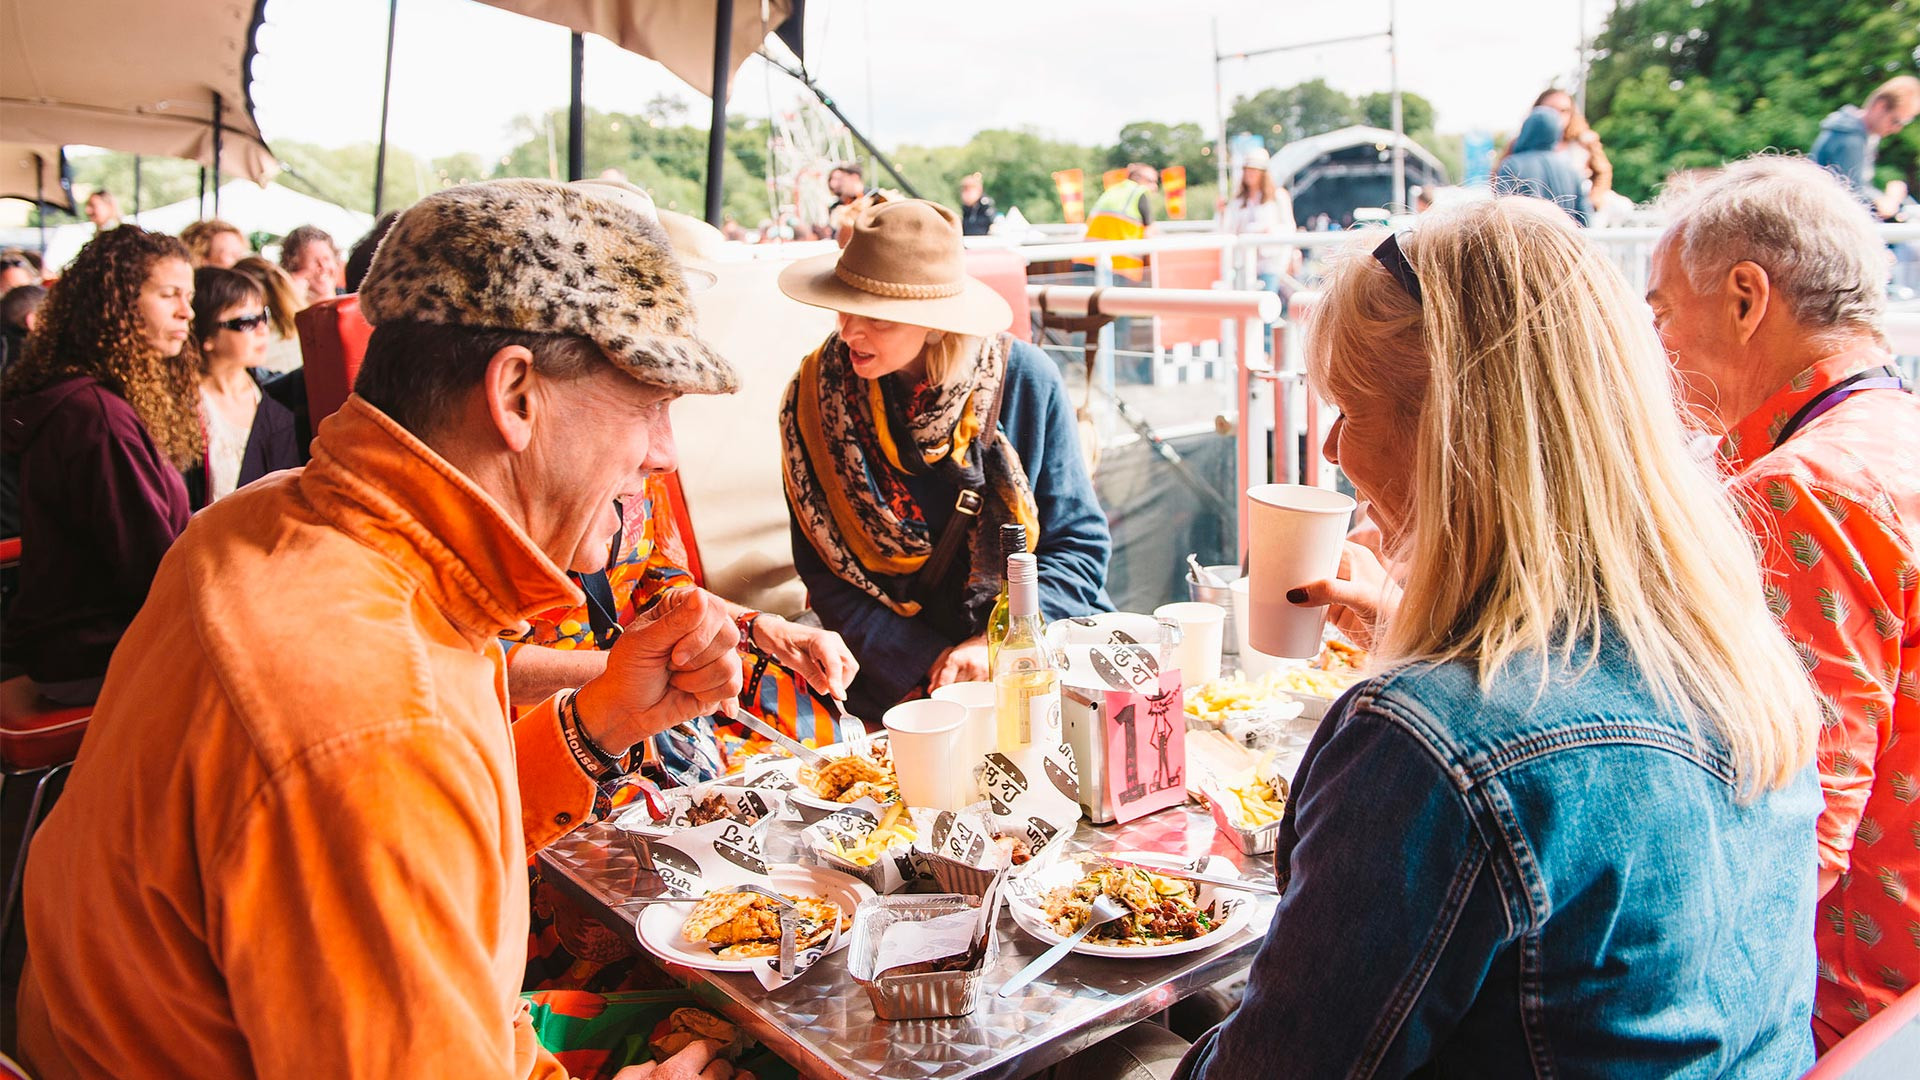 Le Bun's diner at Standon Calling 2017